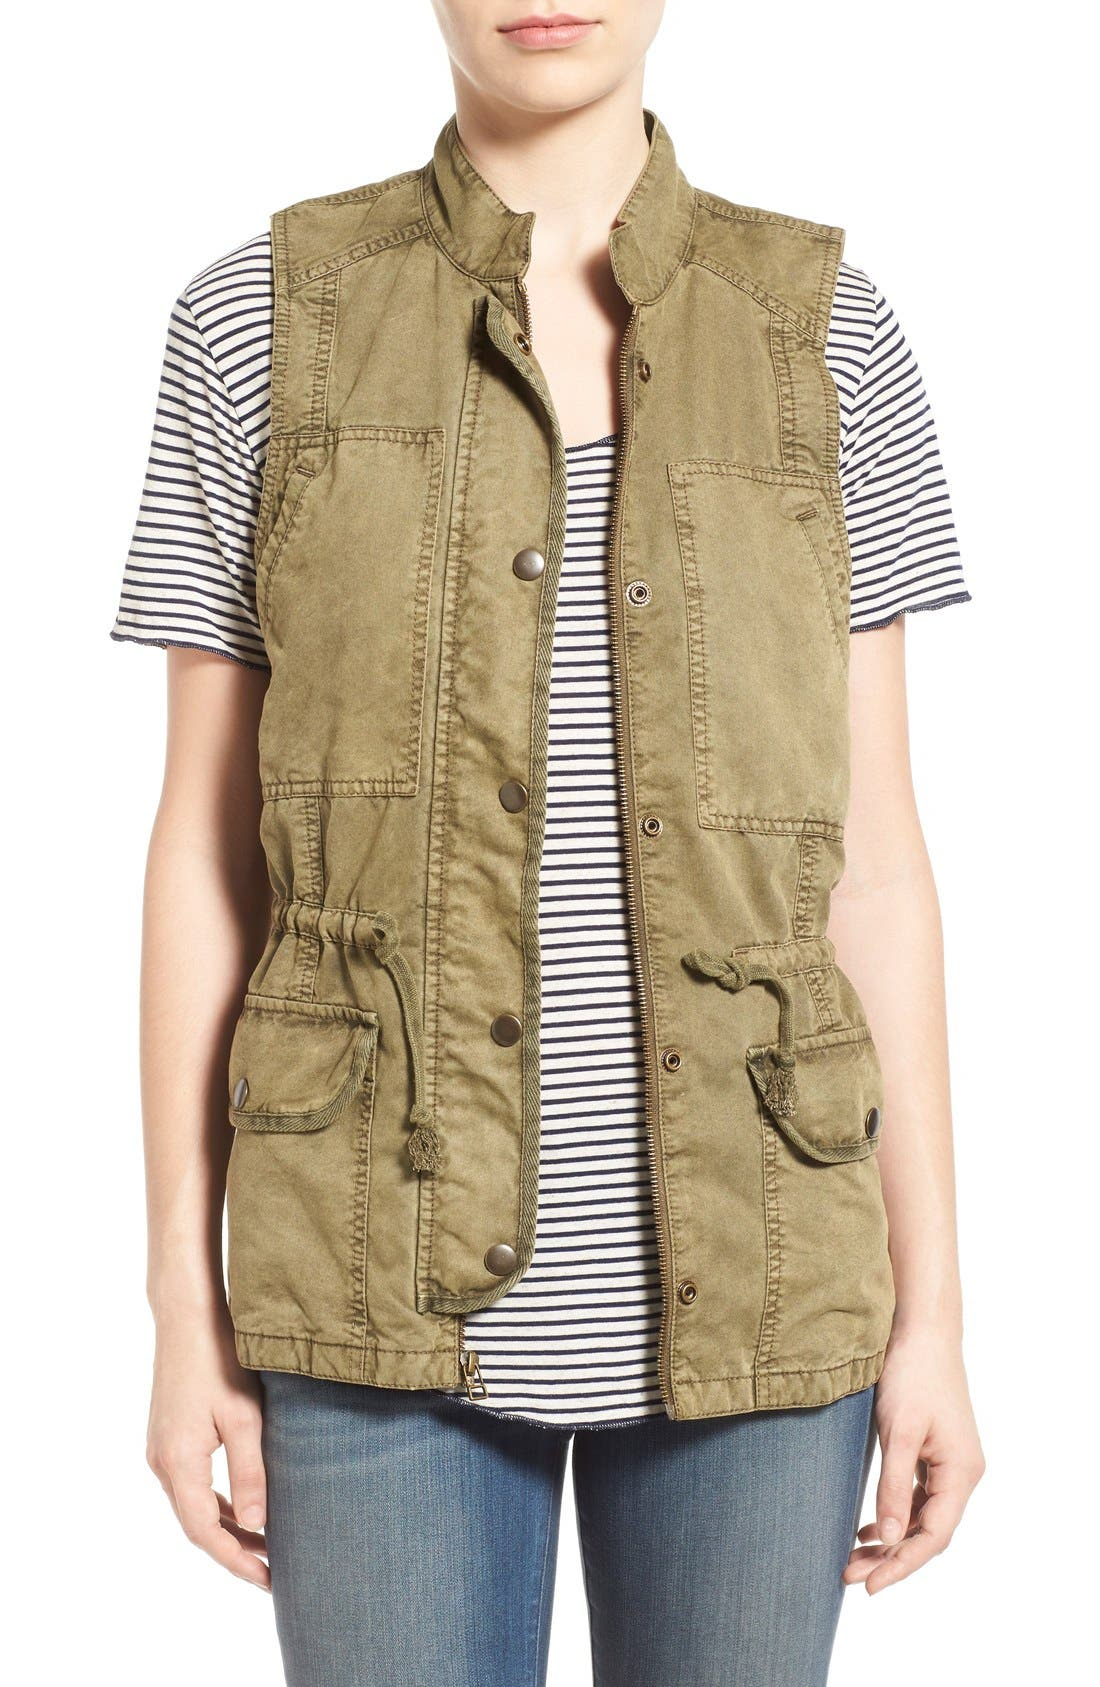 Alternate Image 1 Selected - Hinge 'Expedition' Utility Vest